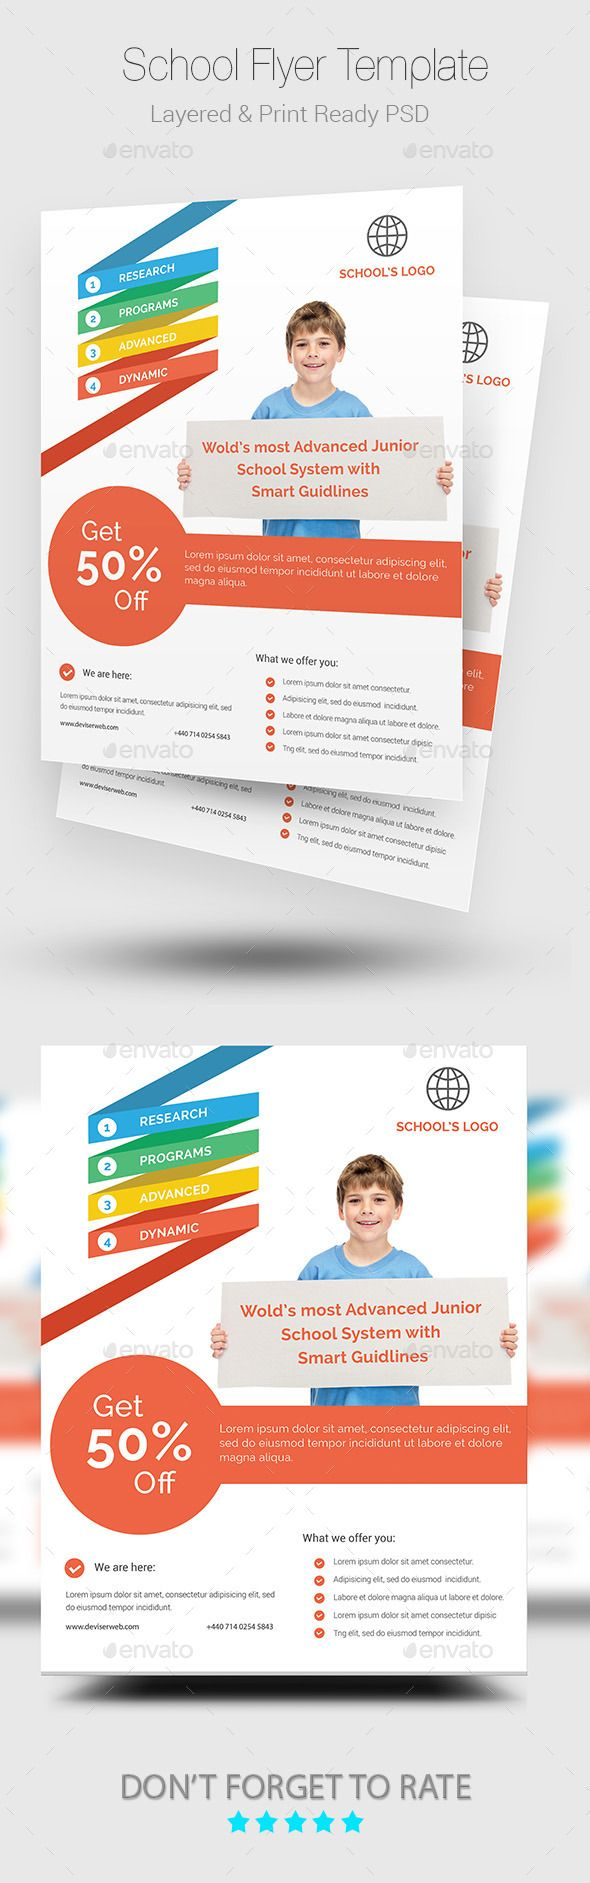 100 Best Flyer Images By Lam Nhat On Pinterest Brochures